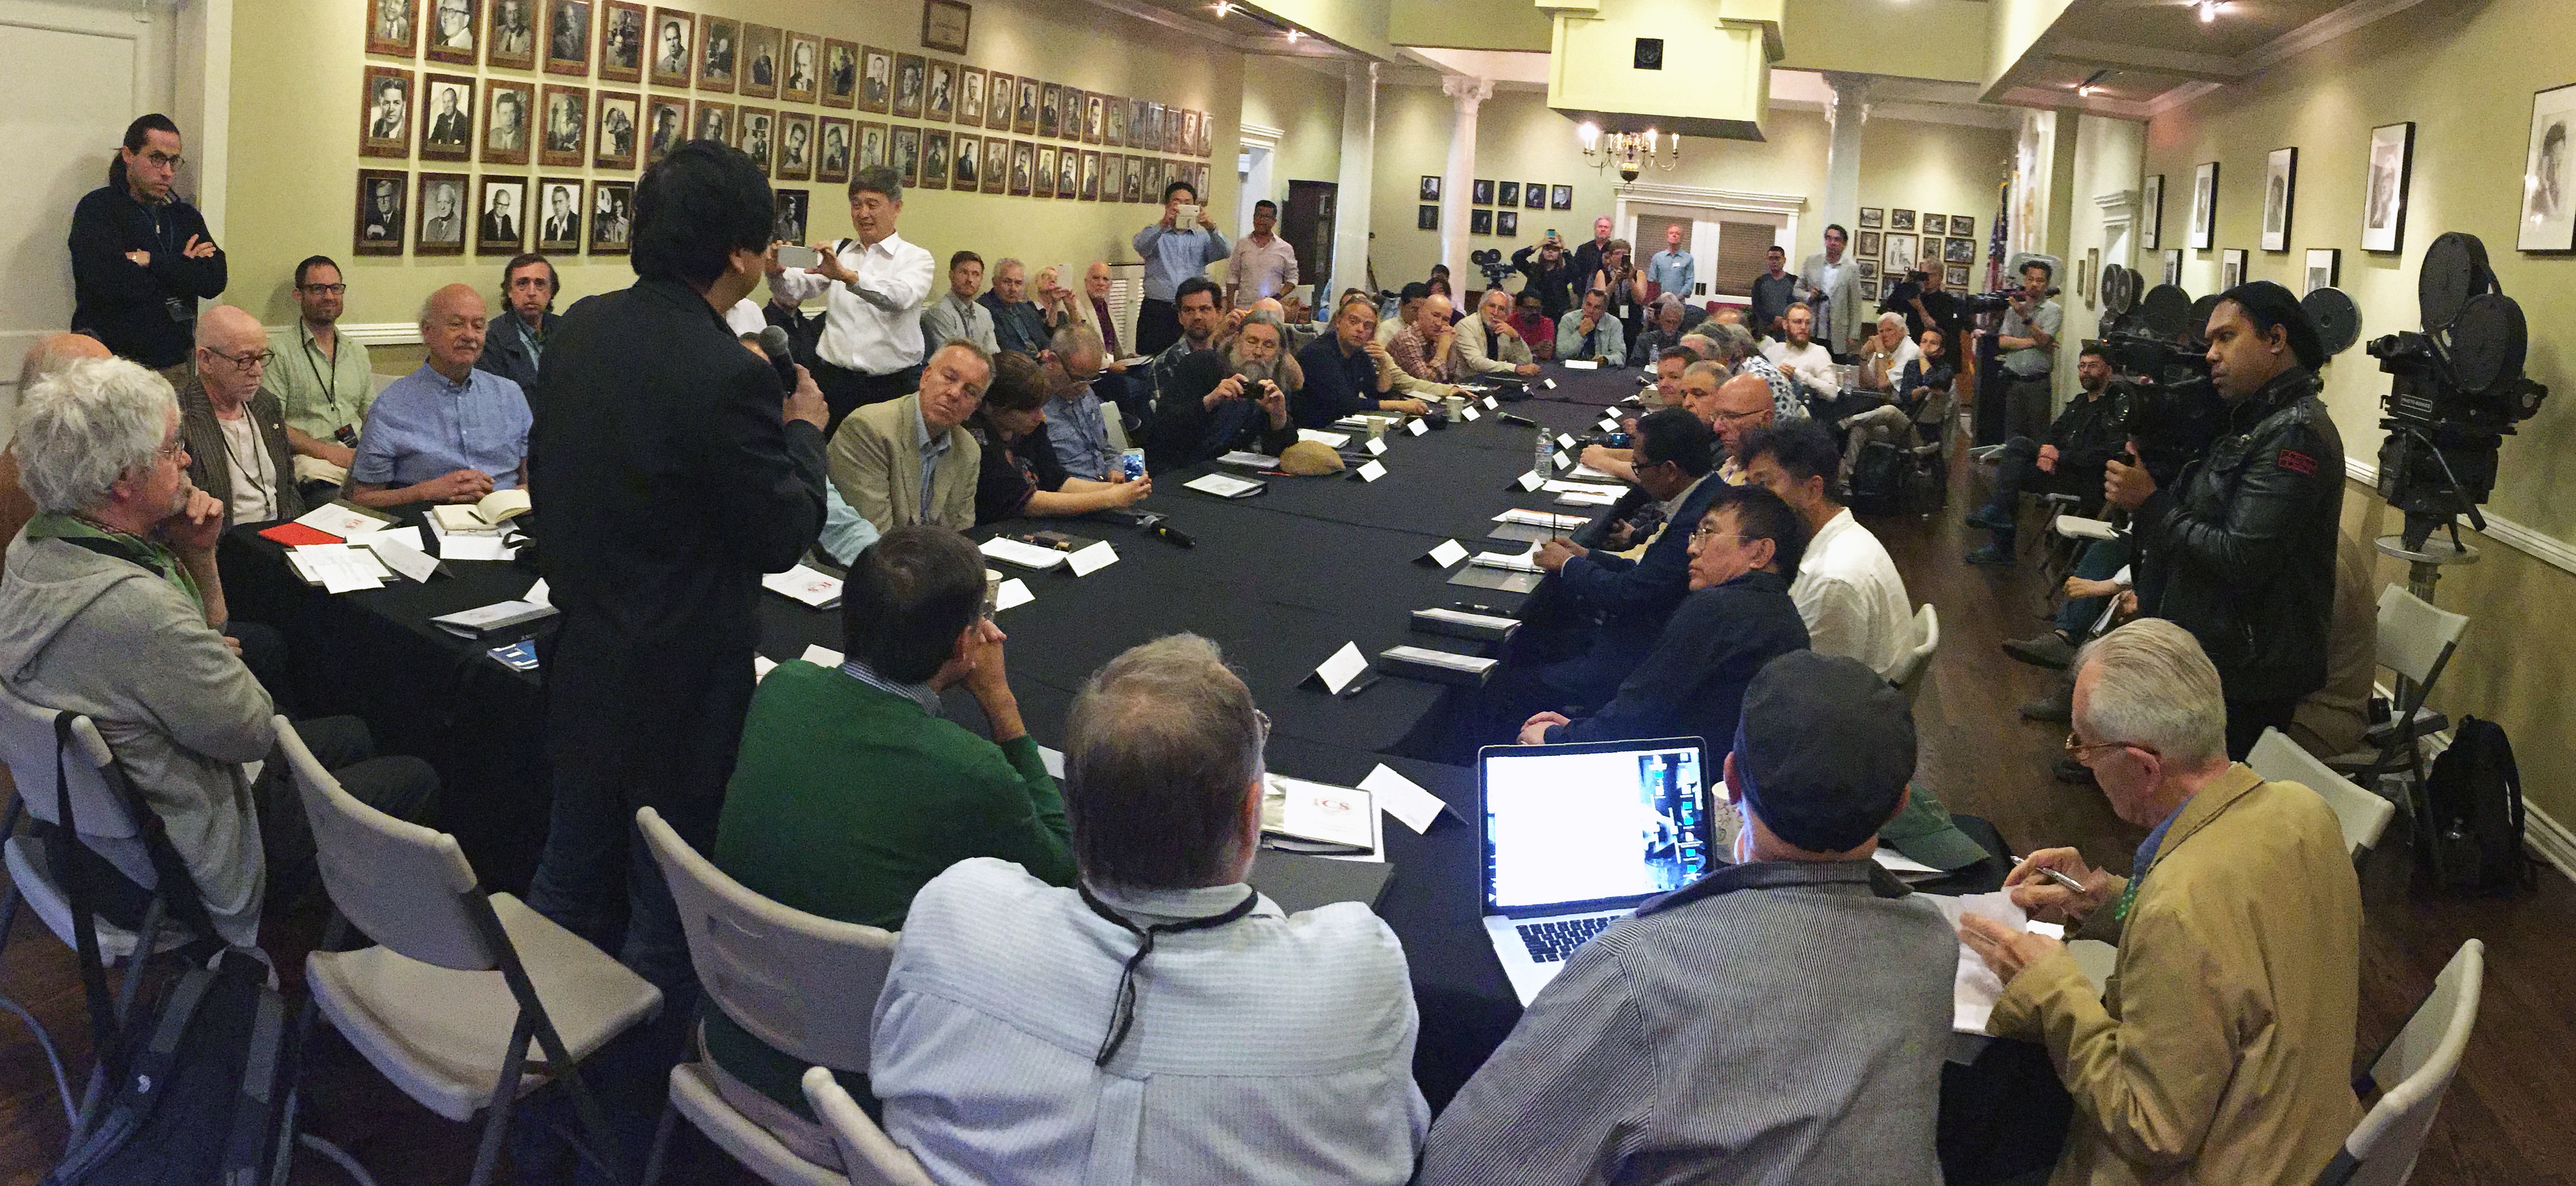 At the ASC Clubhouse, the assembled ICS 2016 participants, representing cinematographers from more than 20 countries. Photo by Bill Bennett, ASC